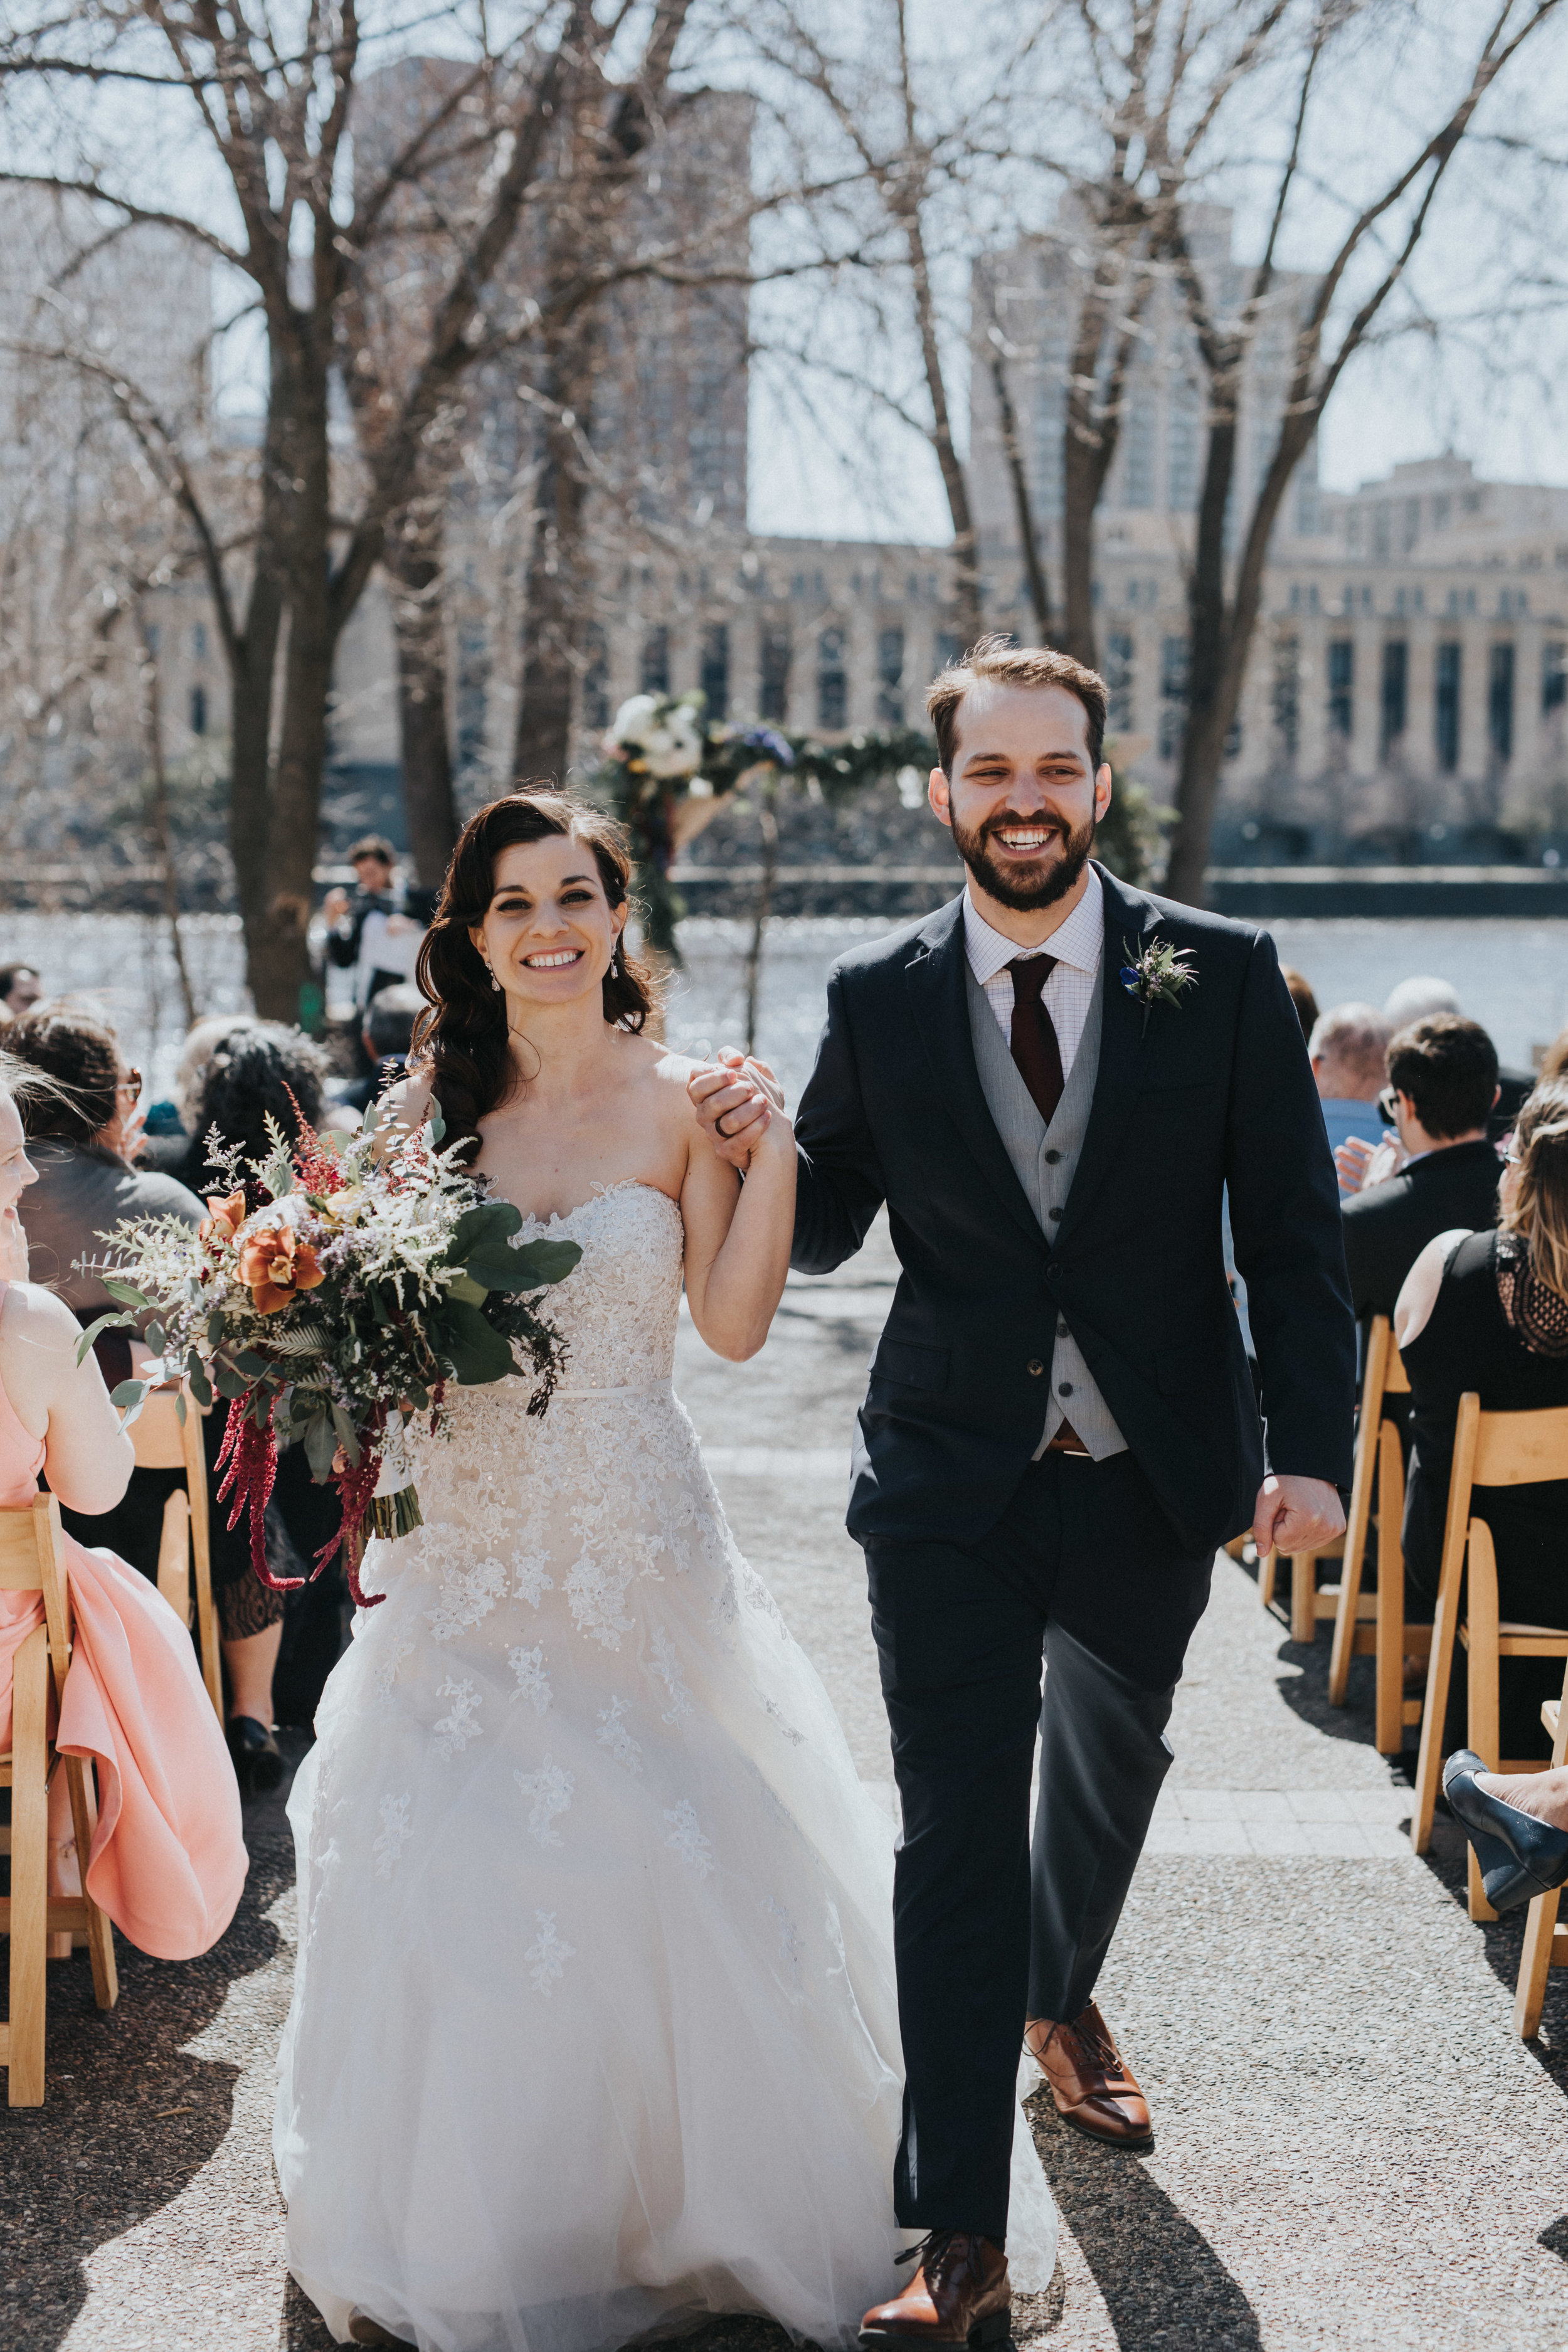 recessional | Mississippi river in the backdrop | Russell Heeter Photography :: Minneapolis wedding planner Sixpence Events :: Nicollet Island Pavilion :: april wedding in Minnesota.jpg